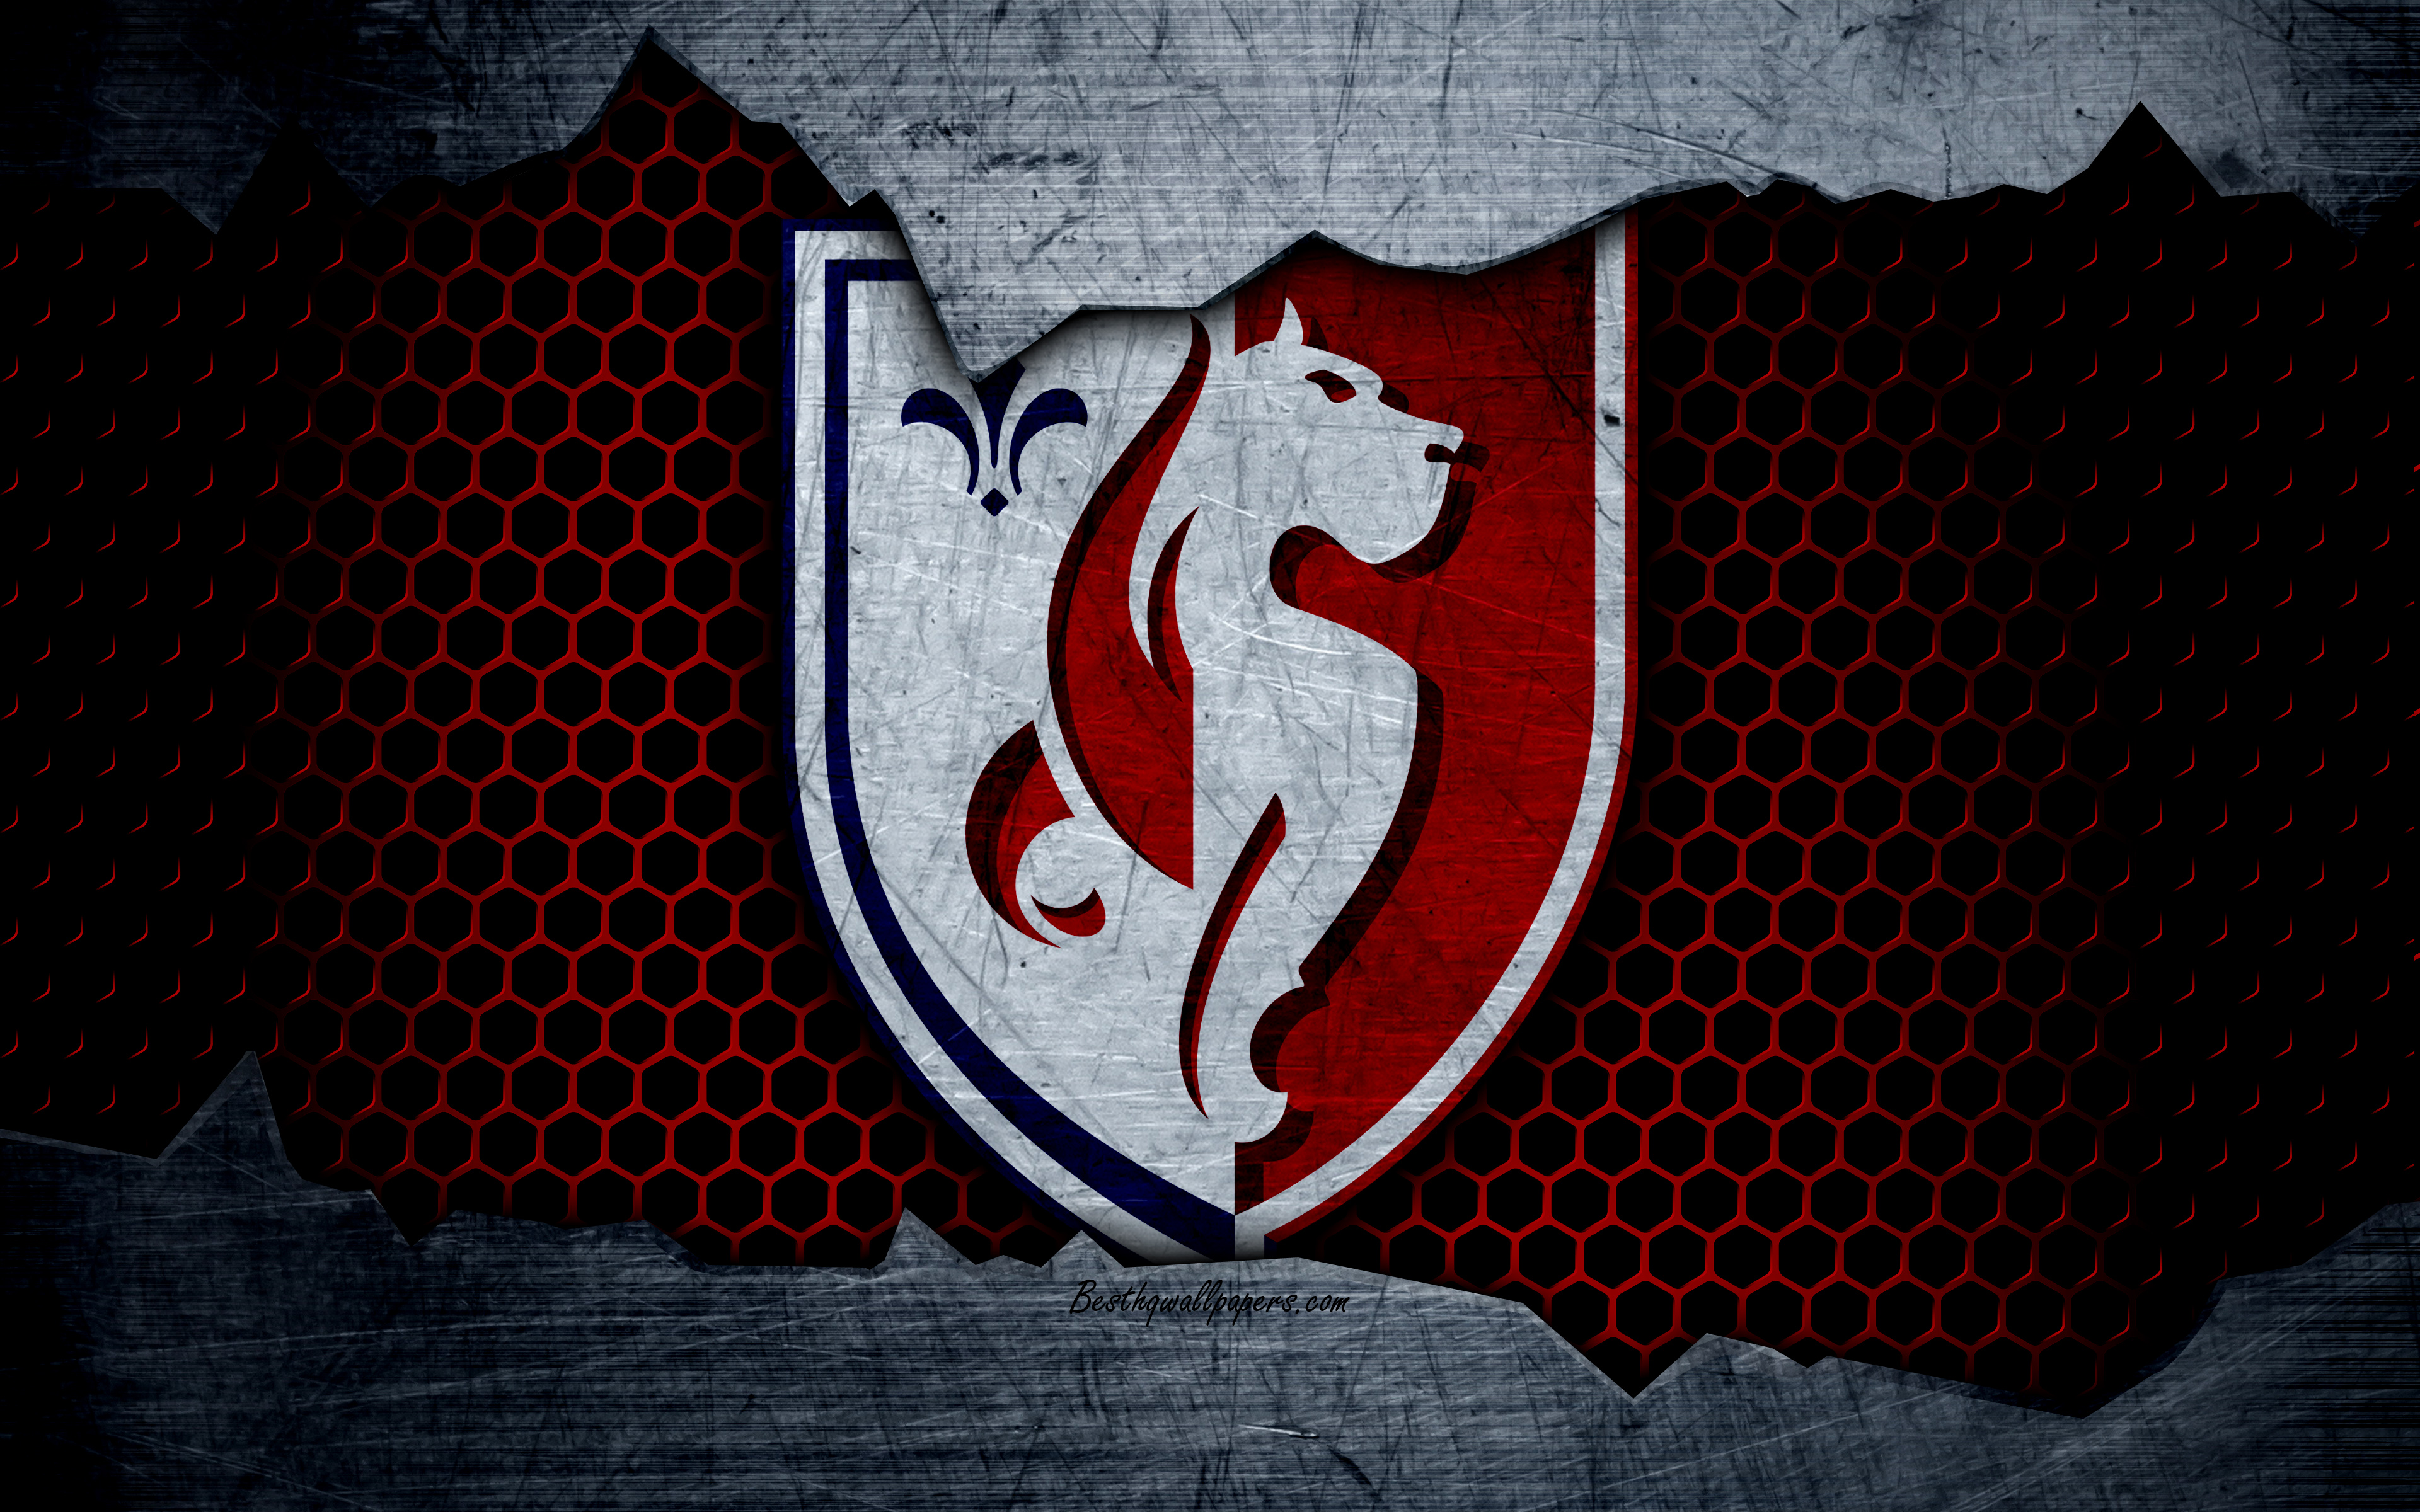 3840x2400 - Lille OSC Wallpapers 14